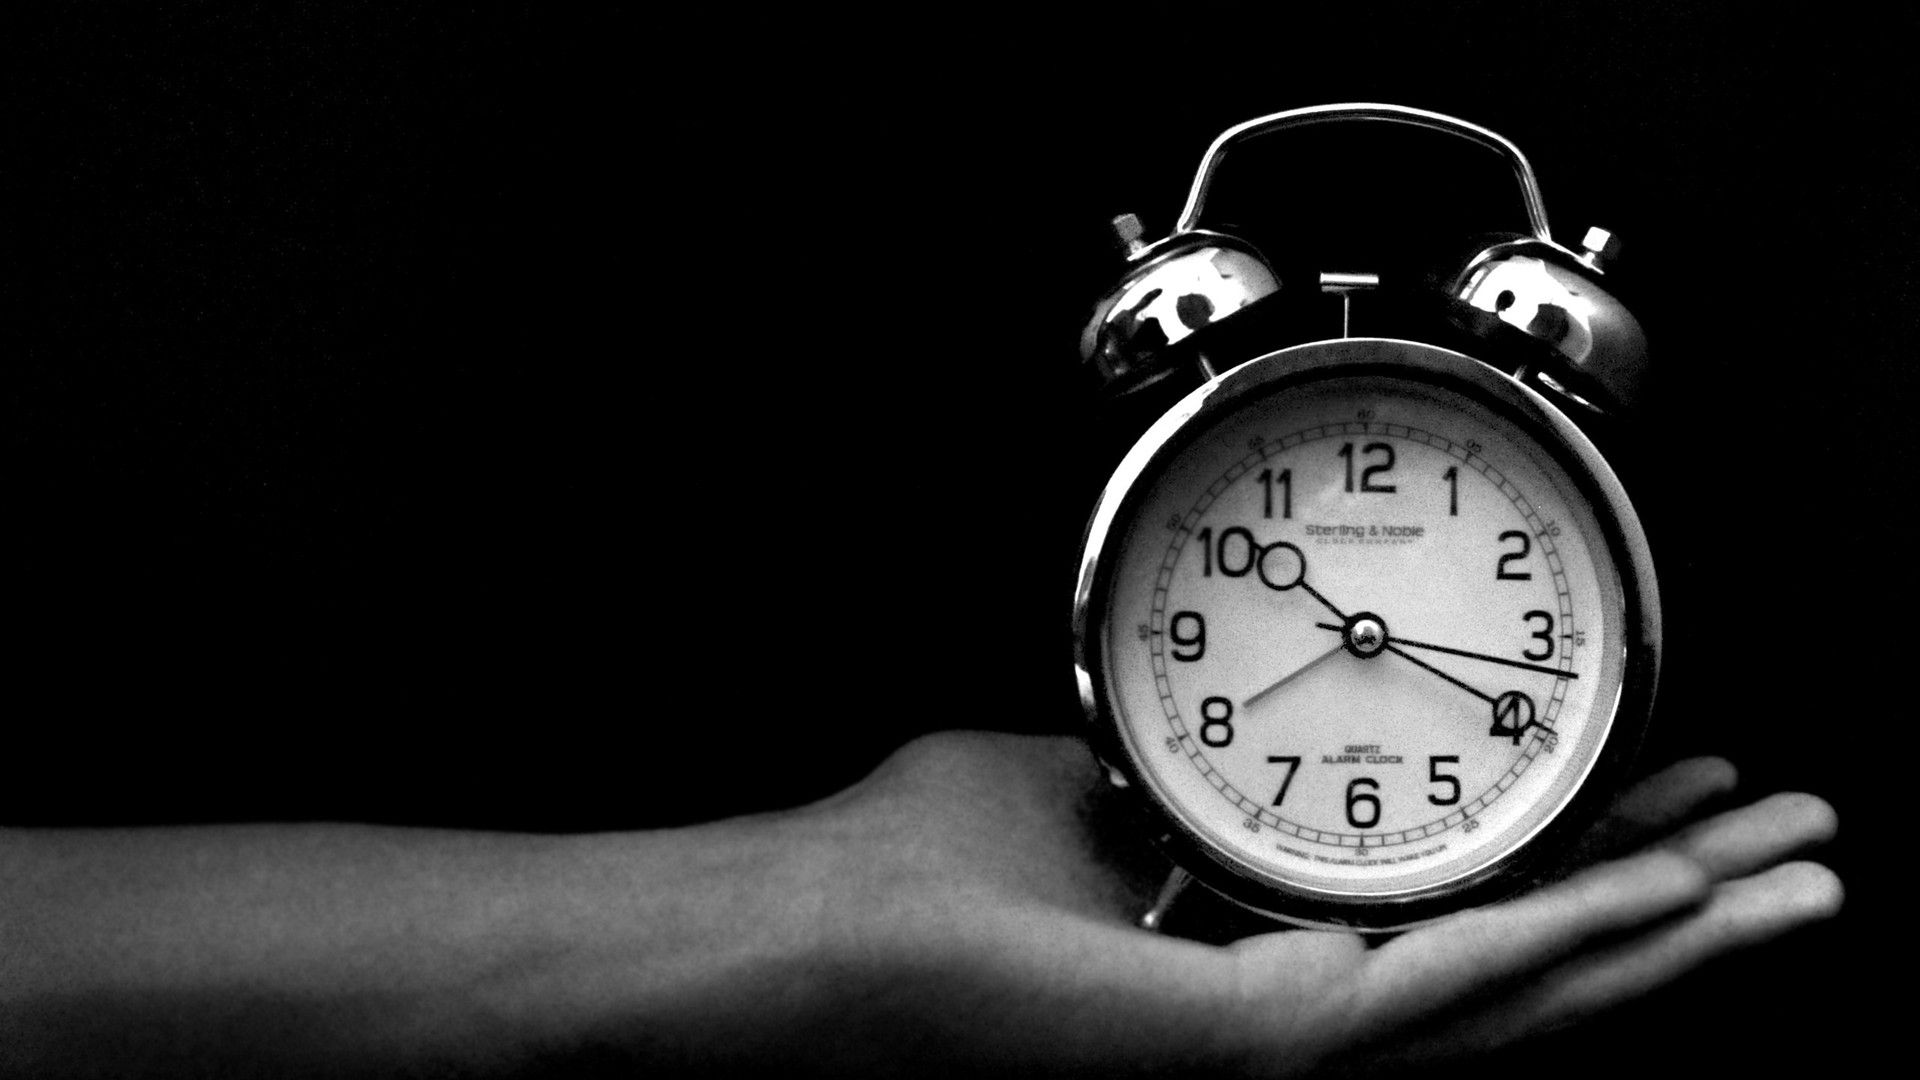 17 Best Images About Black And White On Pinterest Cats Behance Clock Wallpaper Alarm Clock Black And White Background